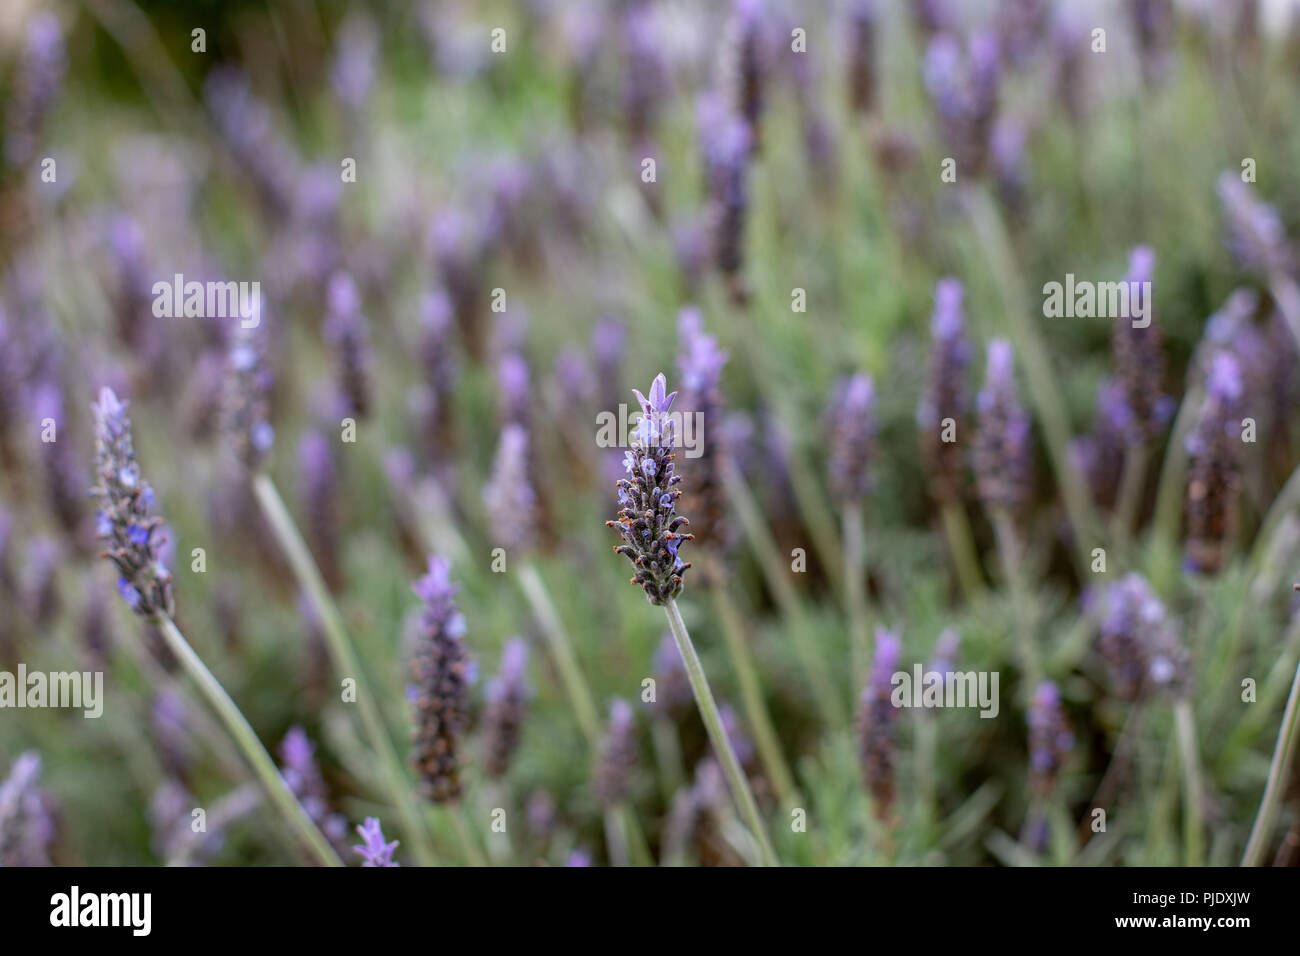 A Purple Lavender Flower Bush With A Selective Focus In Adelaide